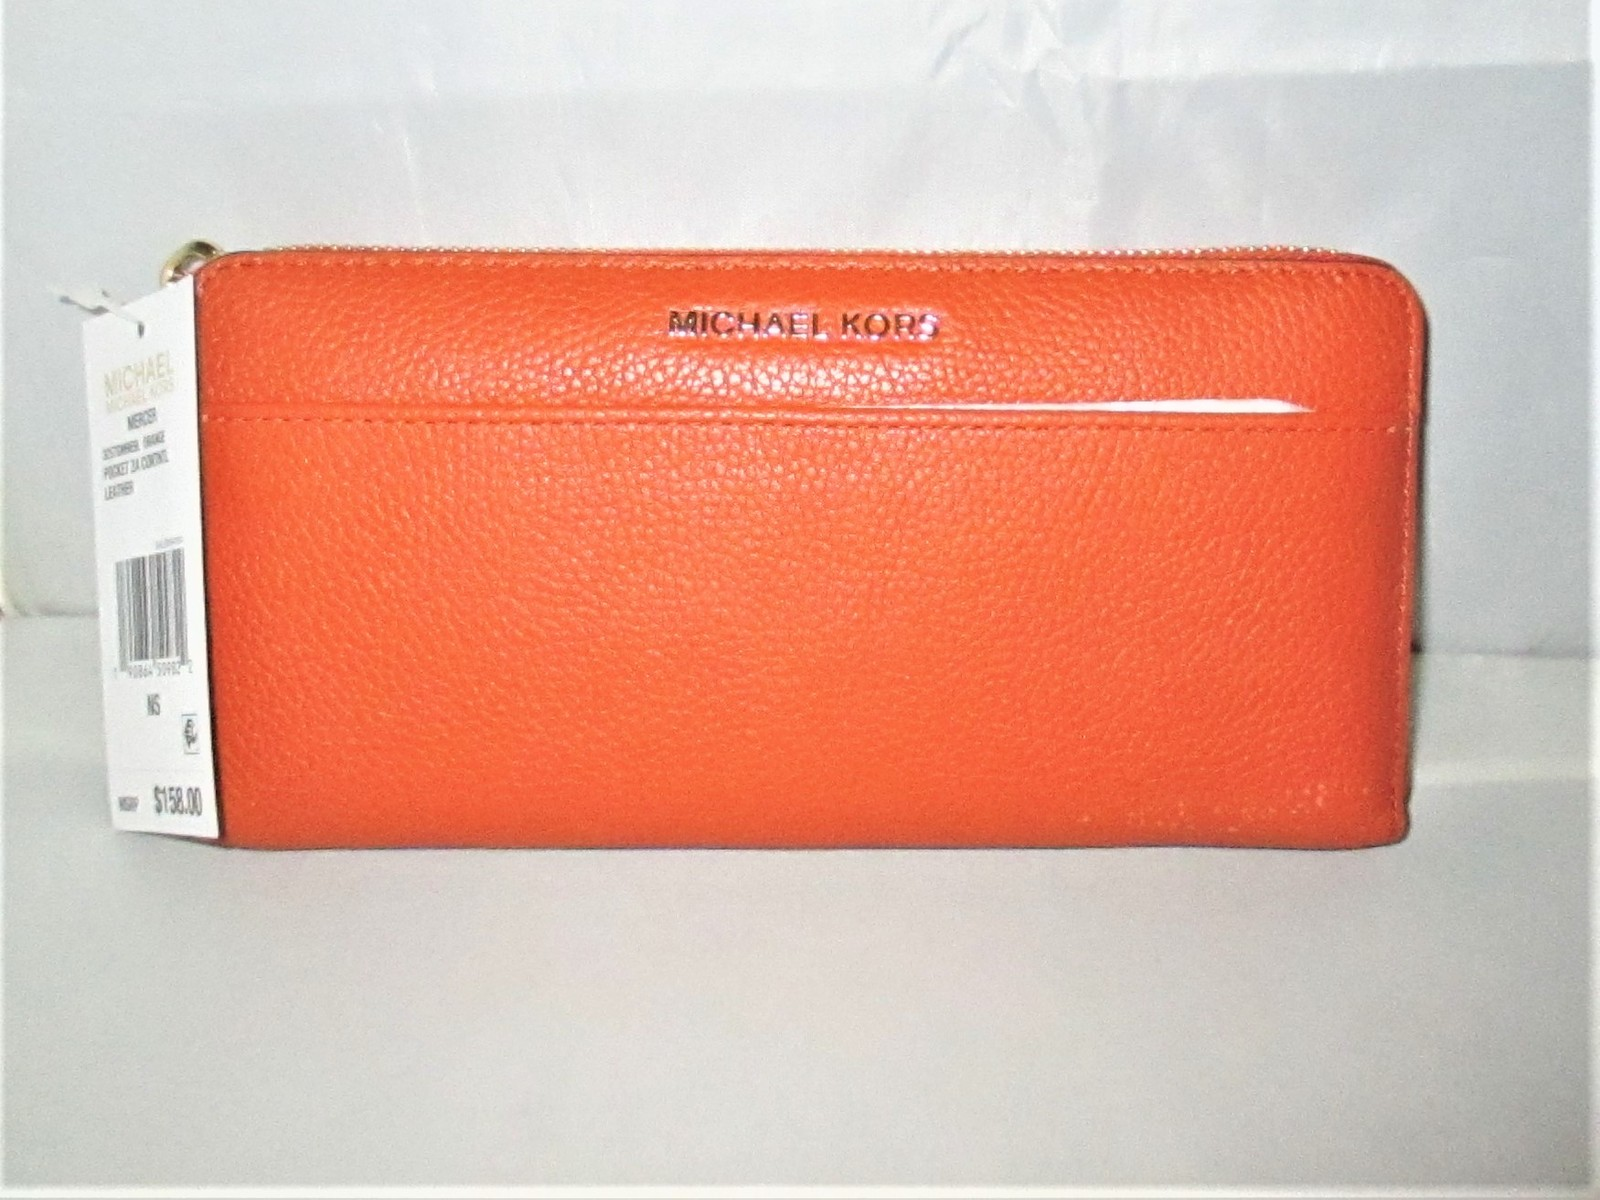 07d7685a3eeb Img 5217. Img 5217. Previous. Michael Kors Mercer Pebbled Leather  Zip-Around Continental Wallet $158 Orange